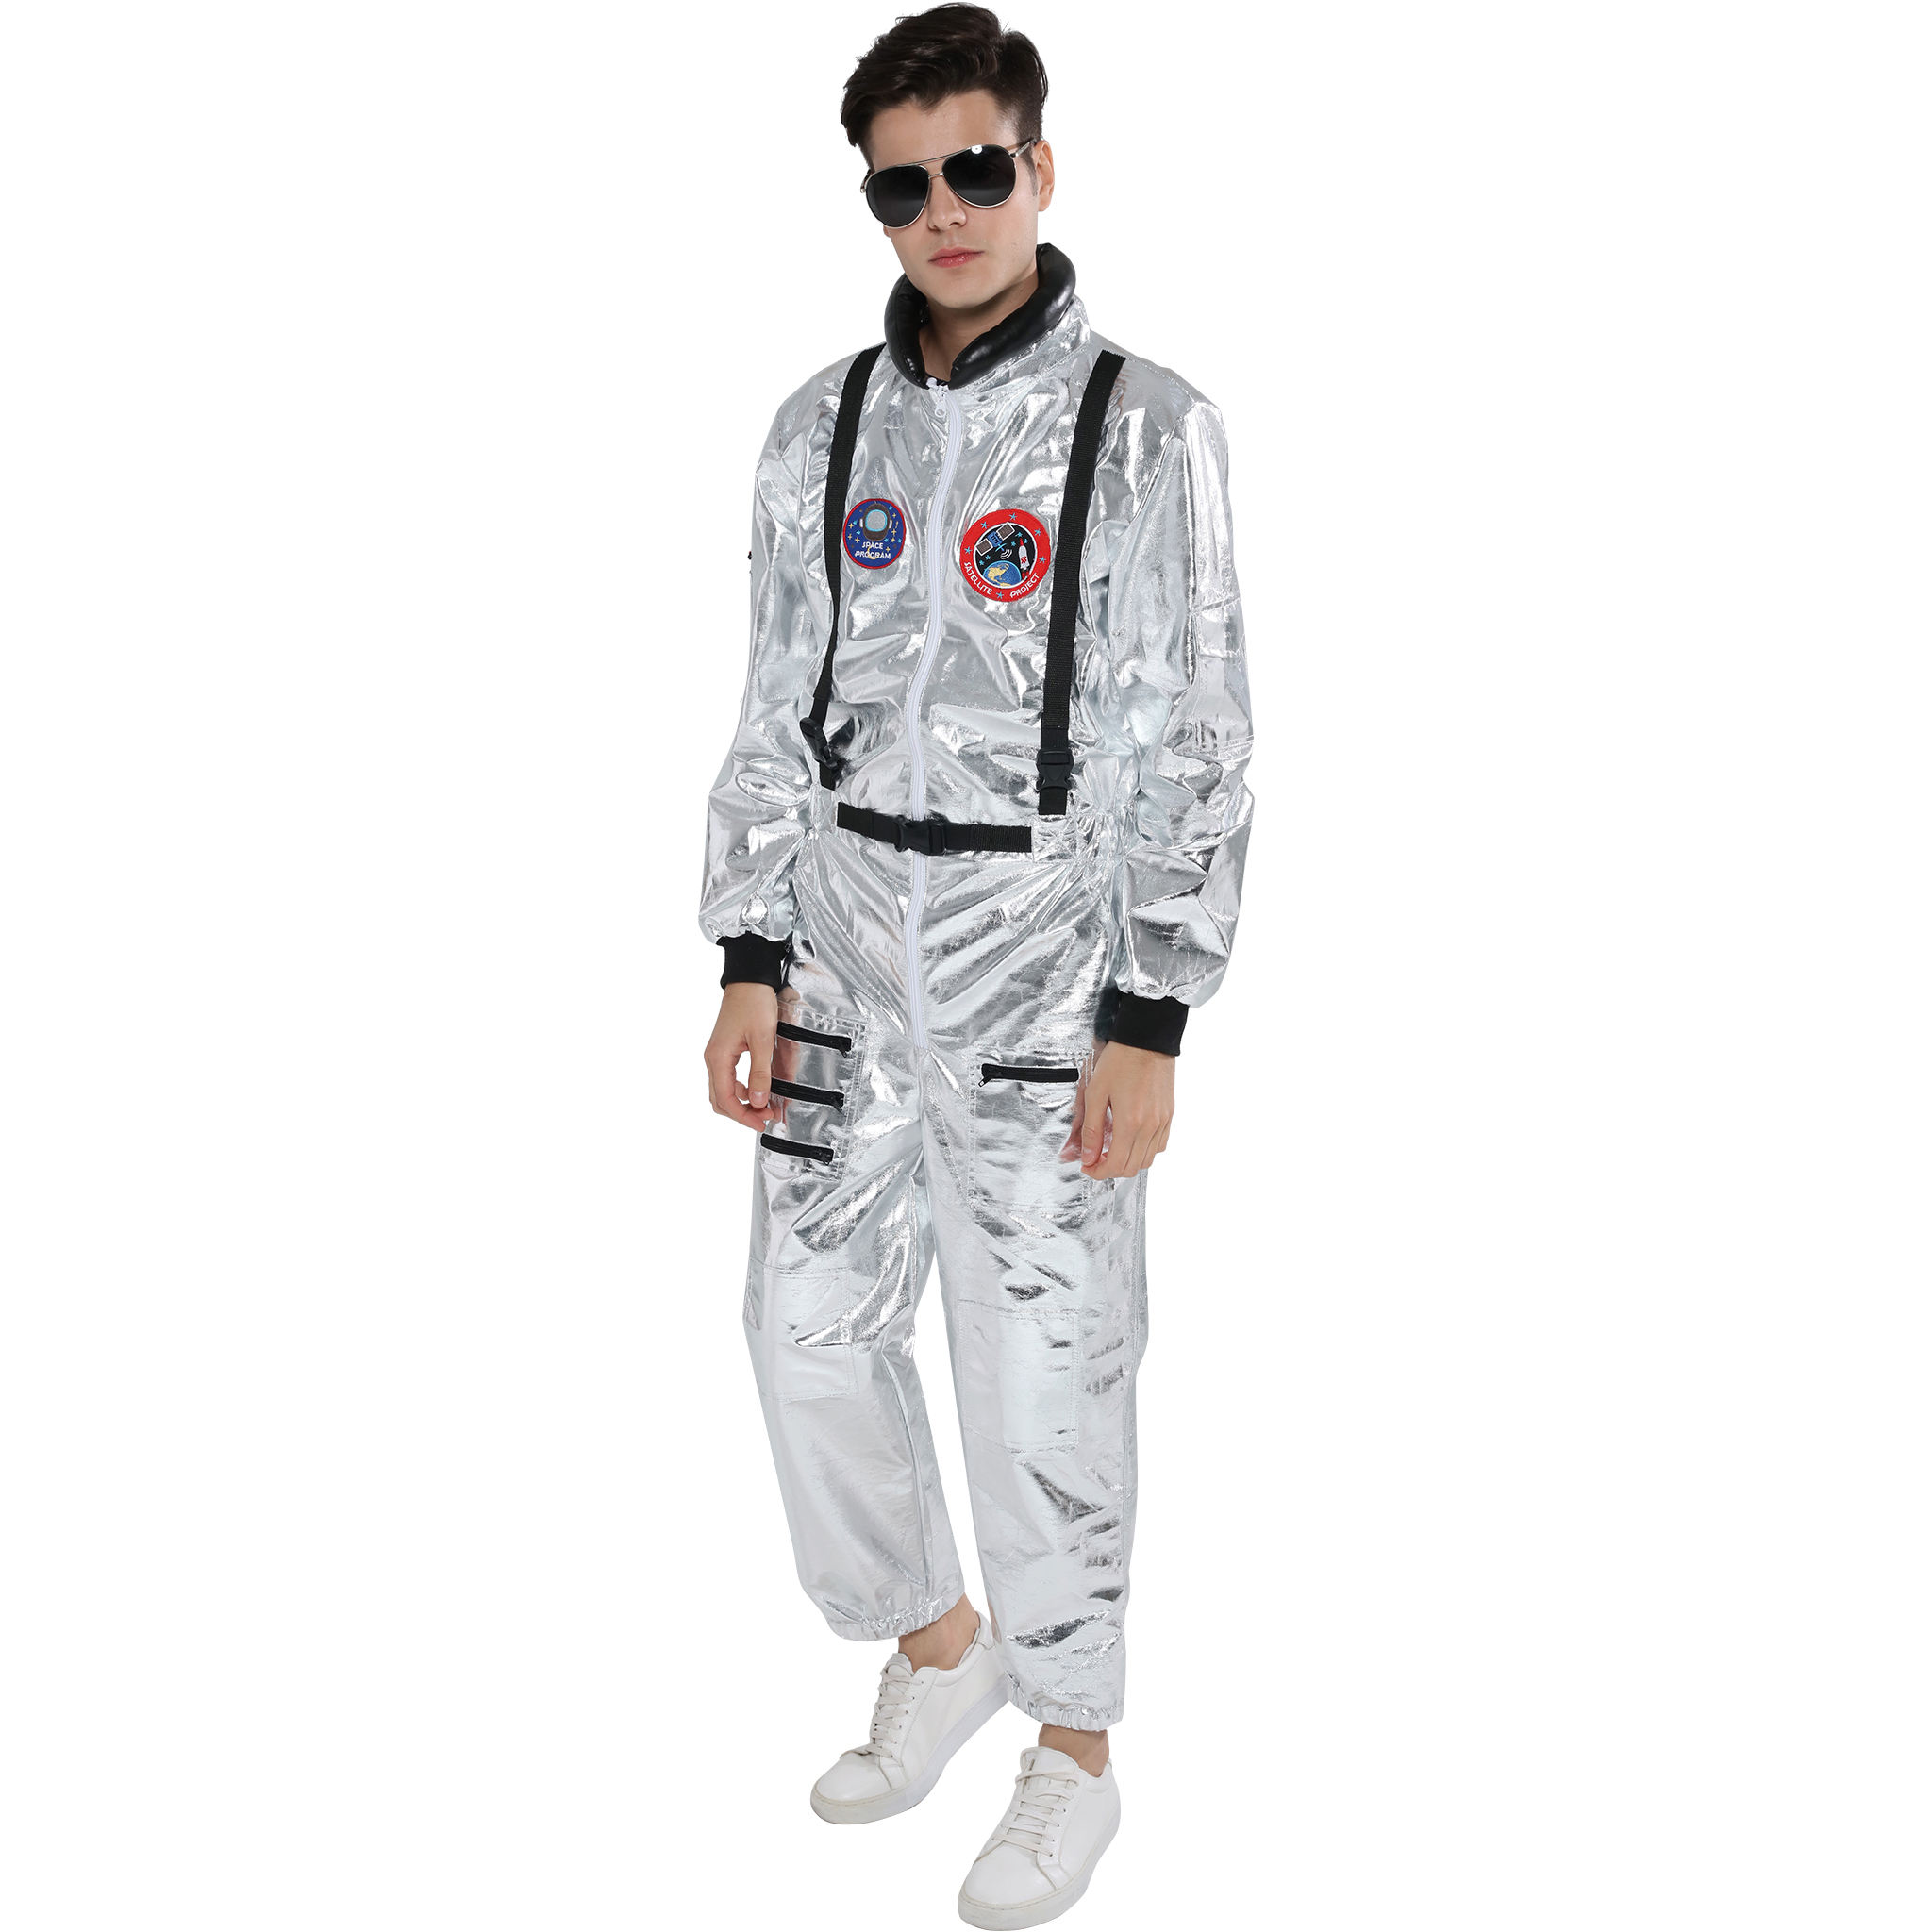 Amazon Top Seller Sliver Jumpsuit Spaceman Cosplay Halloween Kostum Pria Kostum Dewasa Astronot Kostum